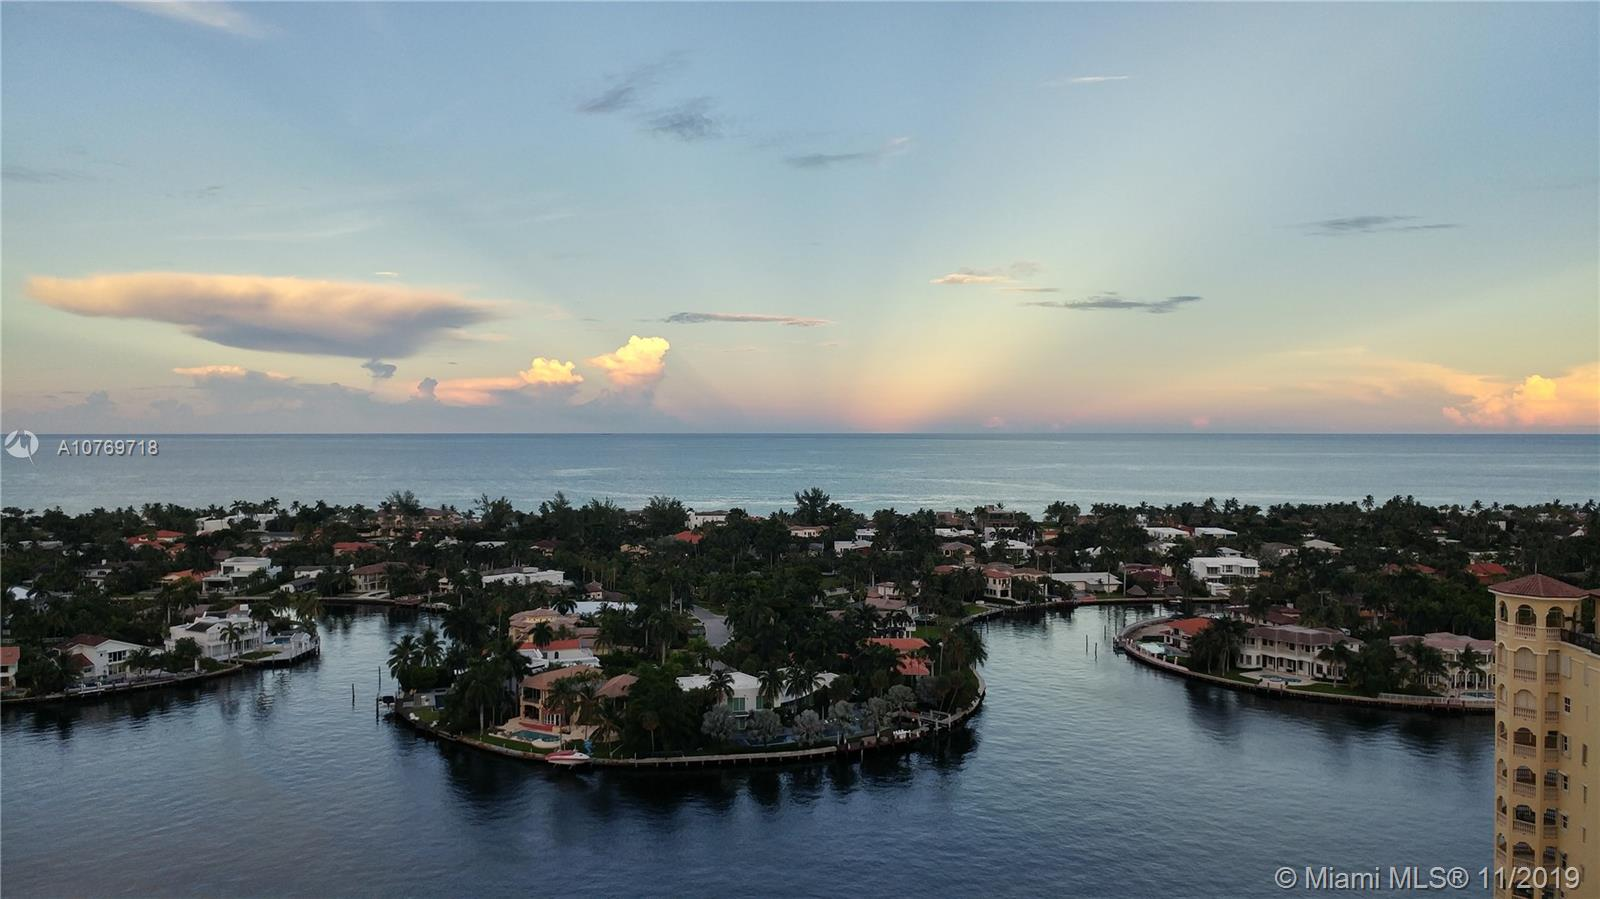 SPECTACULAR OCEANFRONT 3BR, 2.5 Baths, biggest comparable sqft (3,010) in entire area, luxury condo, high floor, wrap around terraces, unobstructable breath taking ocean views over Golden Beach and Sunny Isles/Turnberry Golf! Italian breccia oniciata and storm marble floor throughout in living/kitchen/bath areas, open plan living/dining with pure natural light, oversized master BR with direct ocean view, upgraded kitchen and bathrooms, brand new hurricane shutters, 3 garage spaces and additional storage. Awarded building with heated pool, sun deck, jacuzzi, BBQ, tennis, club room, sauna, gym, 24 hours security and valet parking. Situated on prestigeous Country Club Drive, minutes from Aventura Mall, Gulfstream Park, beach, restaurants, entertainment, shopping, I-95 and great schools.